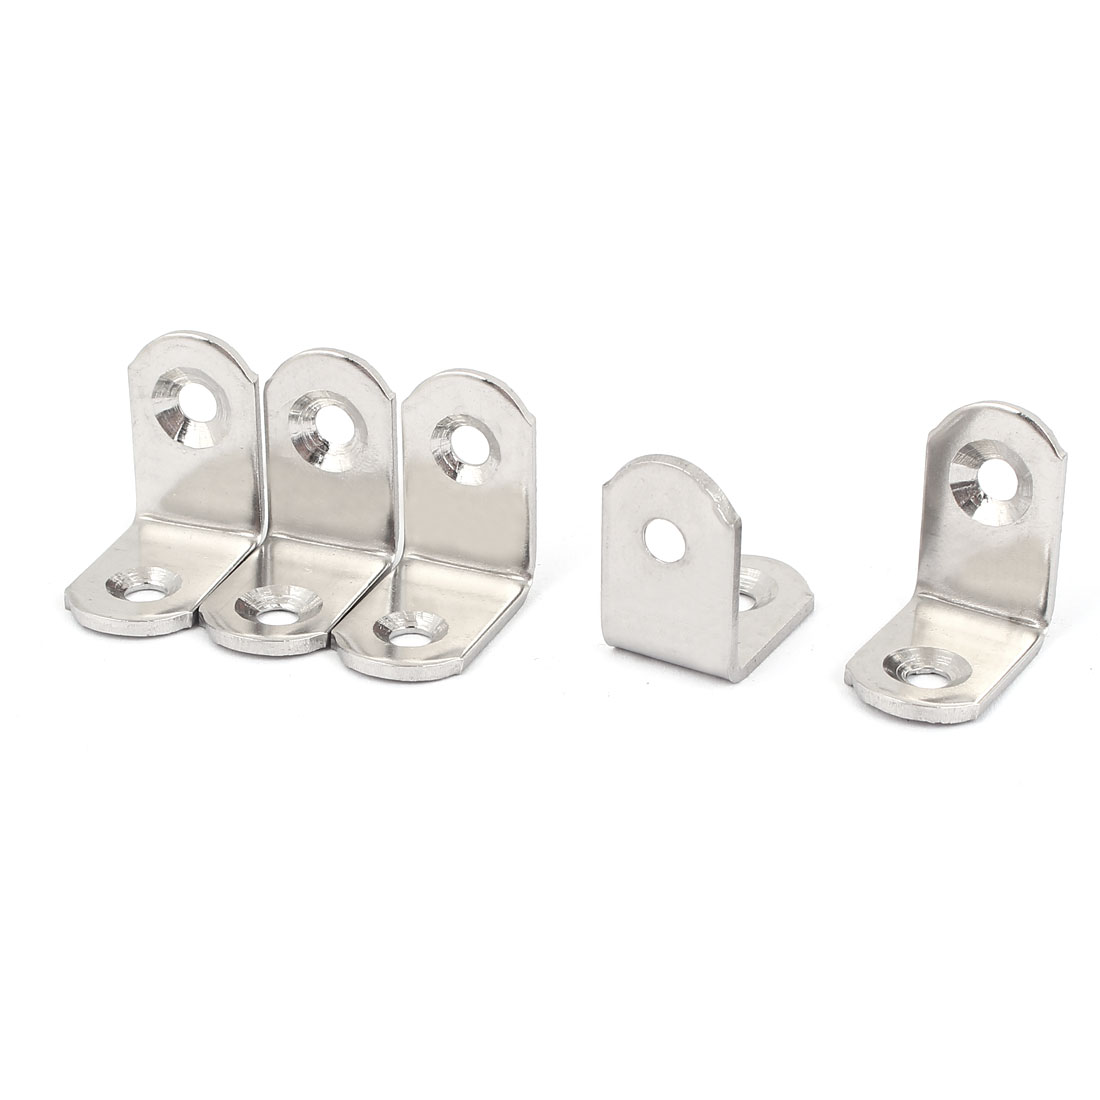 25mm x 25mm Stainless Steel L Shape Corner Brace Joint Right Angle Bracket 5pcs